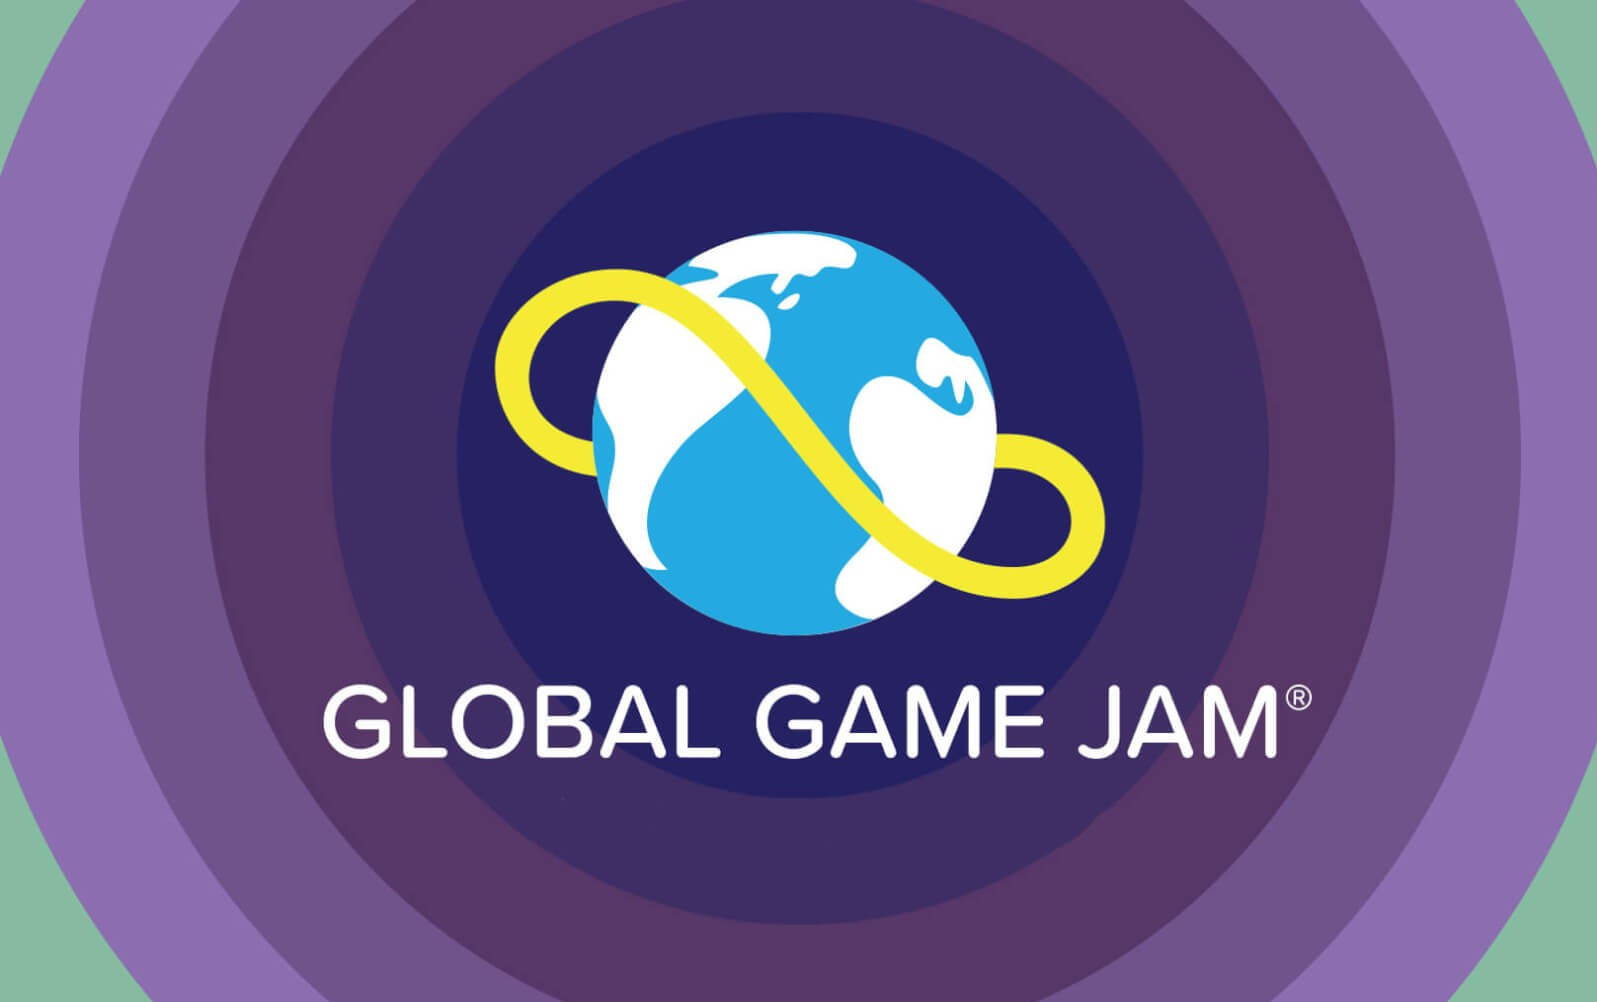 global-game-jam-icin-geri-sayim-basladi-3